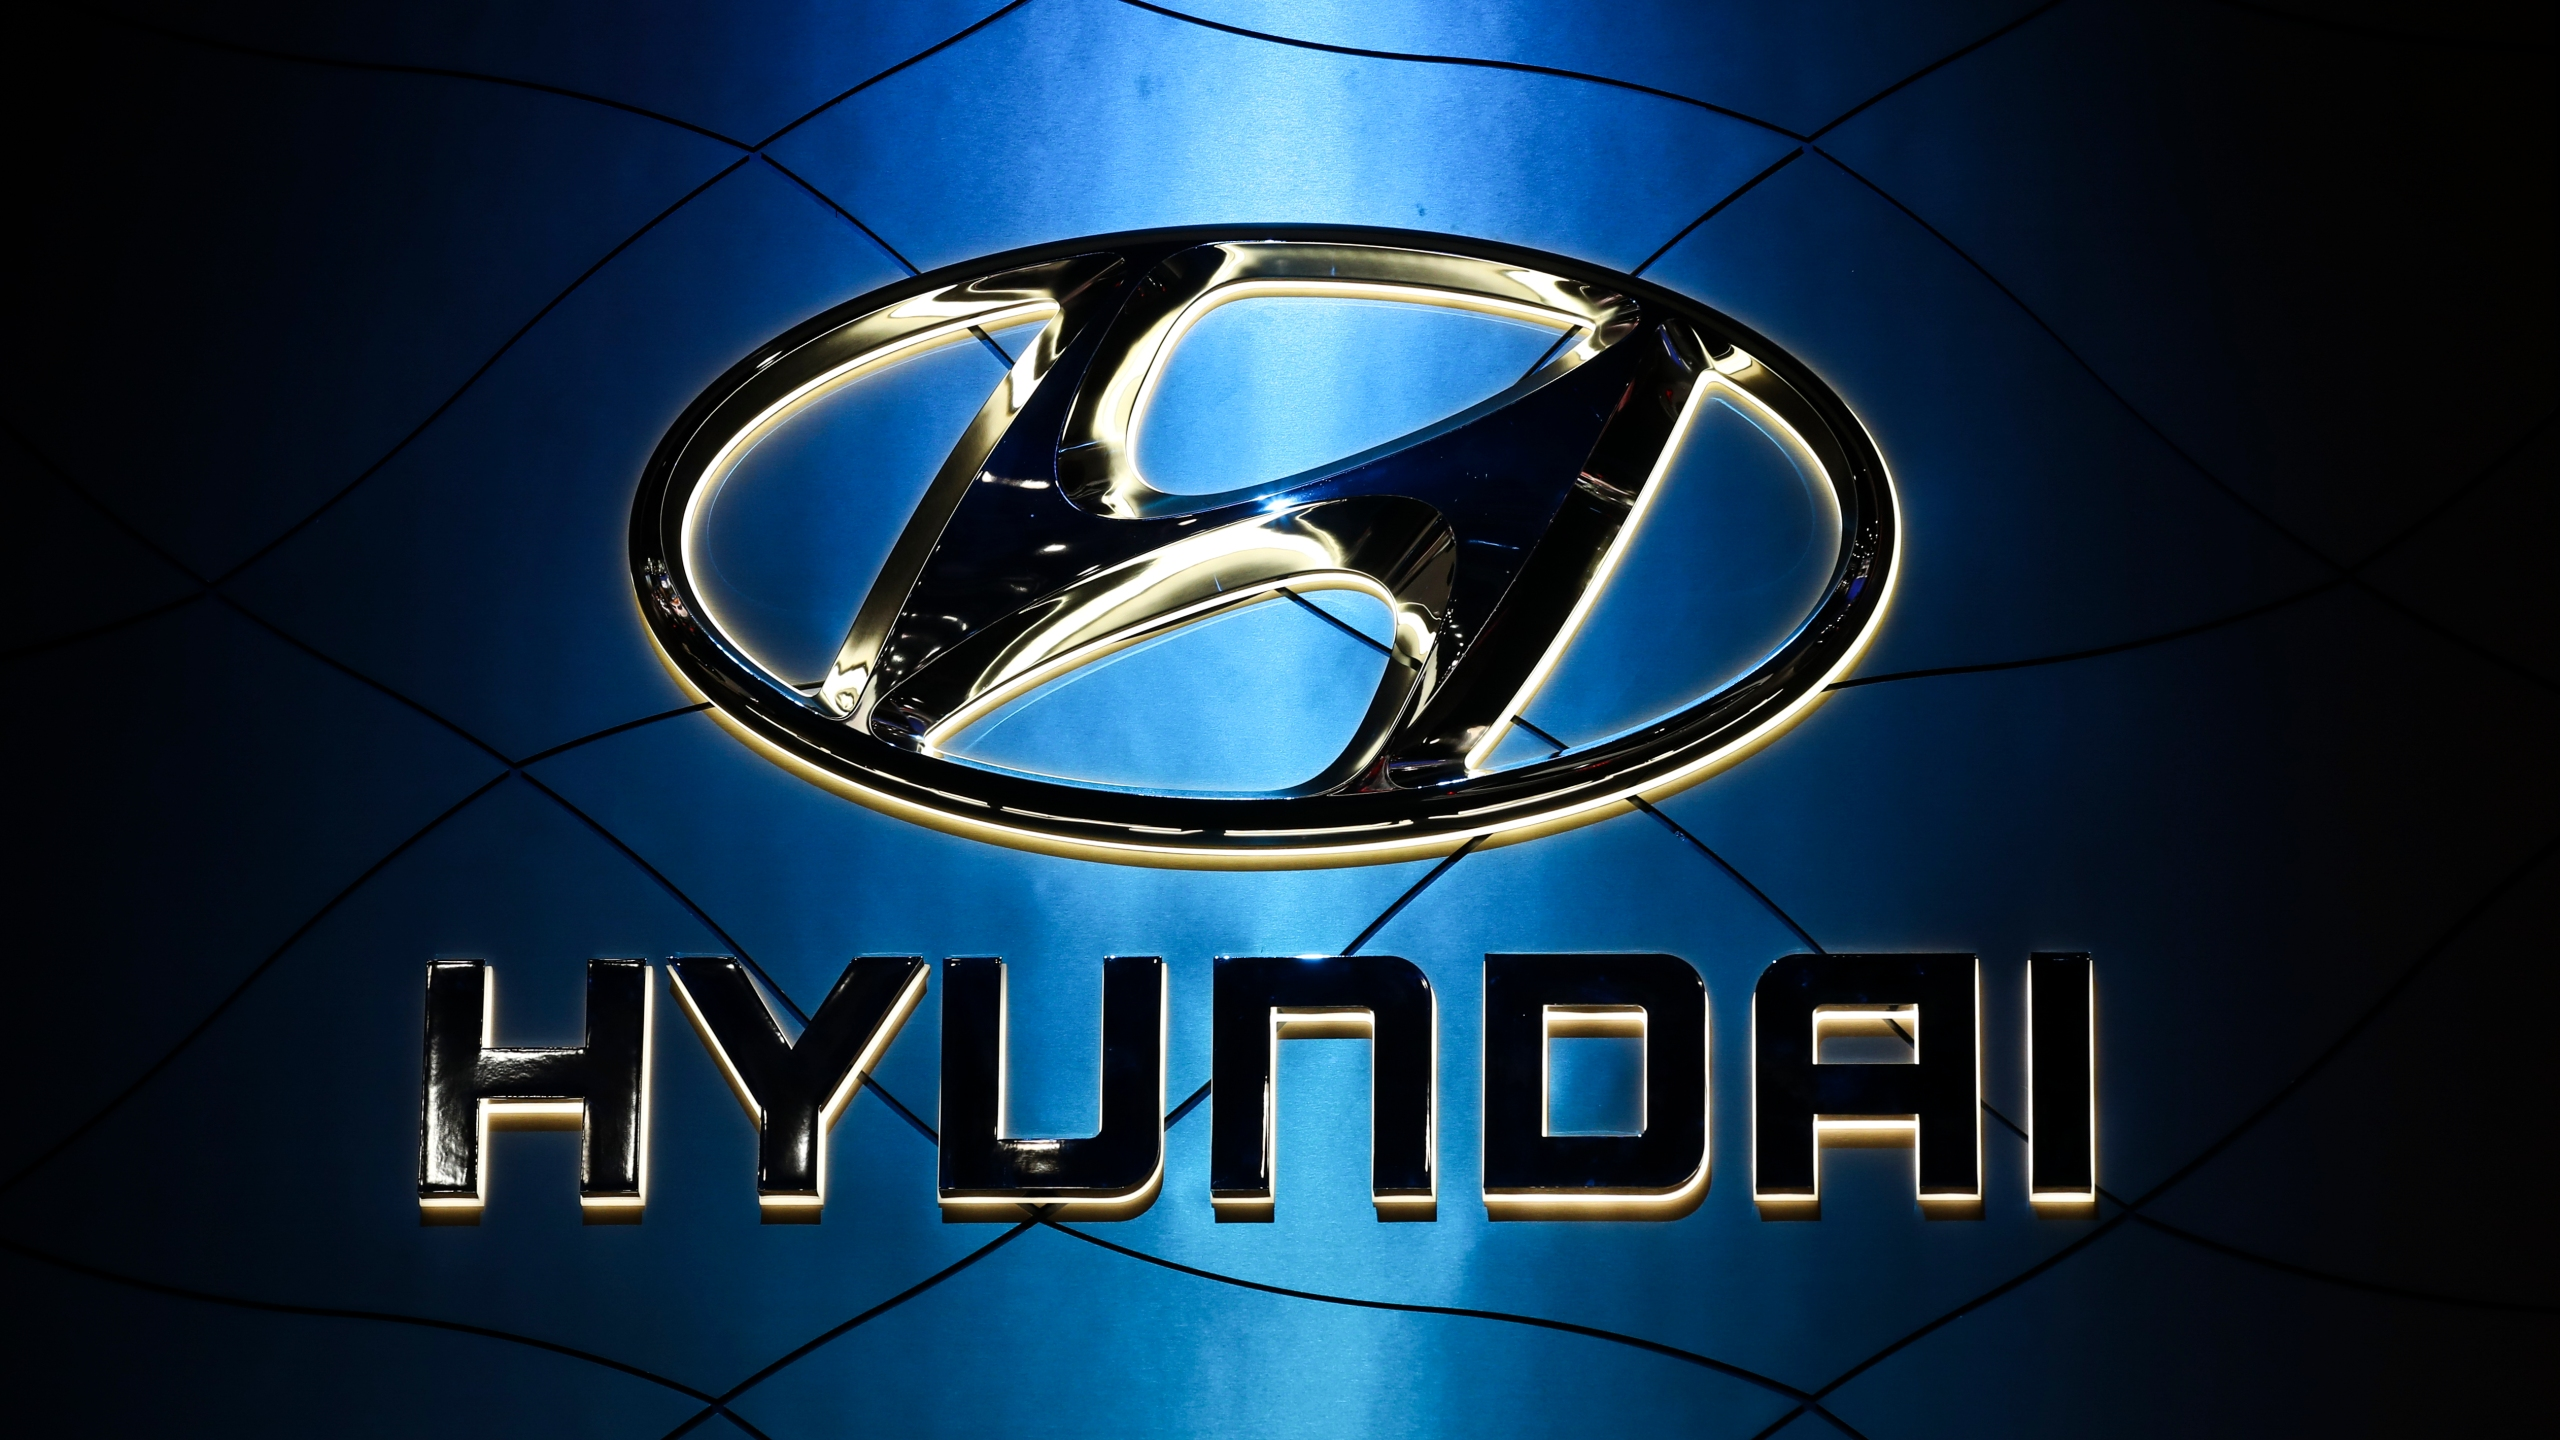 The Hyundai logo is displayed at the New York International Auto Show on March 28, 2018, at the Jacob K. Javits Convention Center in New York City. (Drew Angerer / Getty Images)